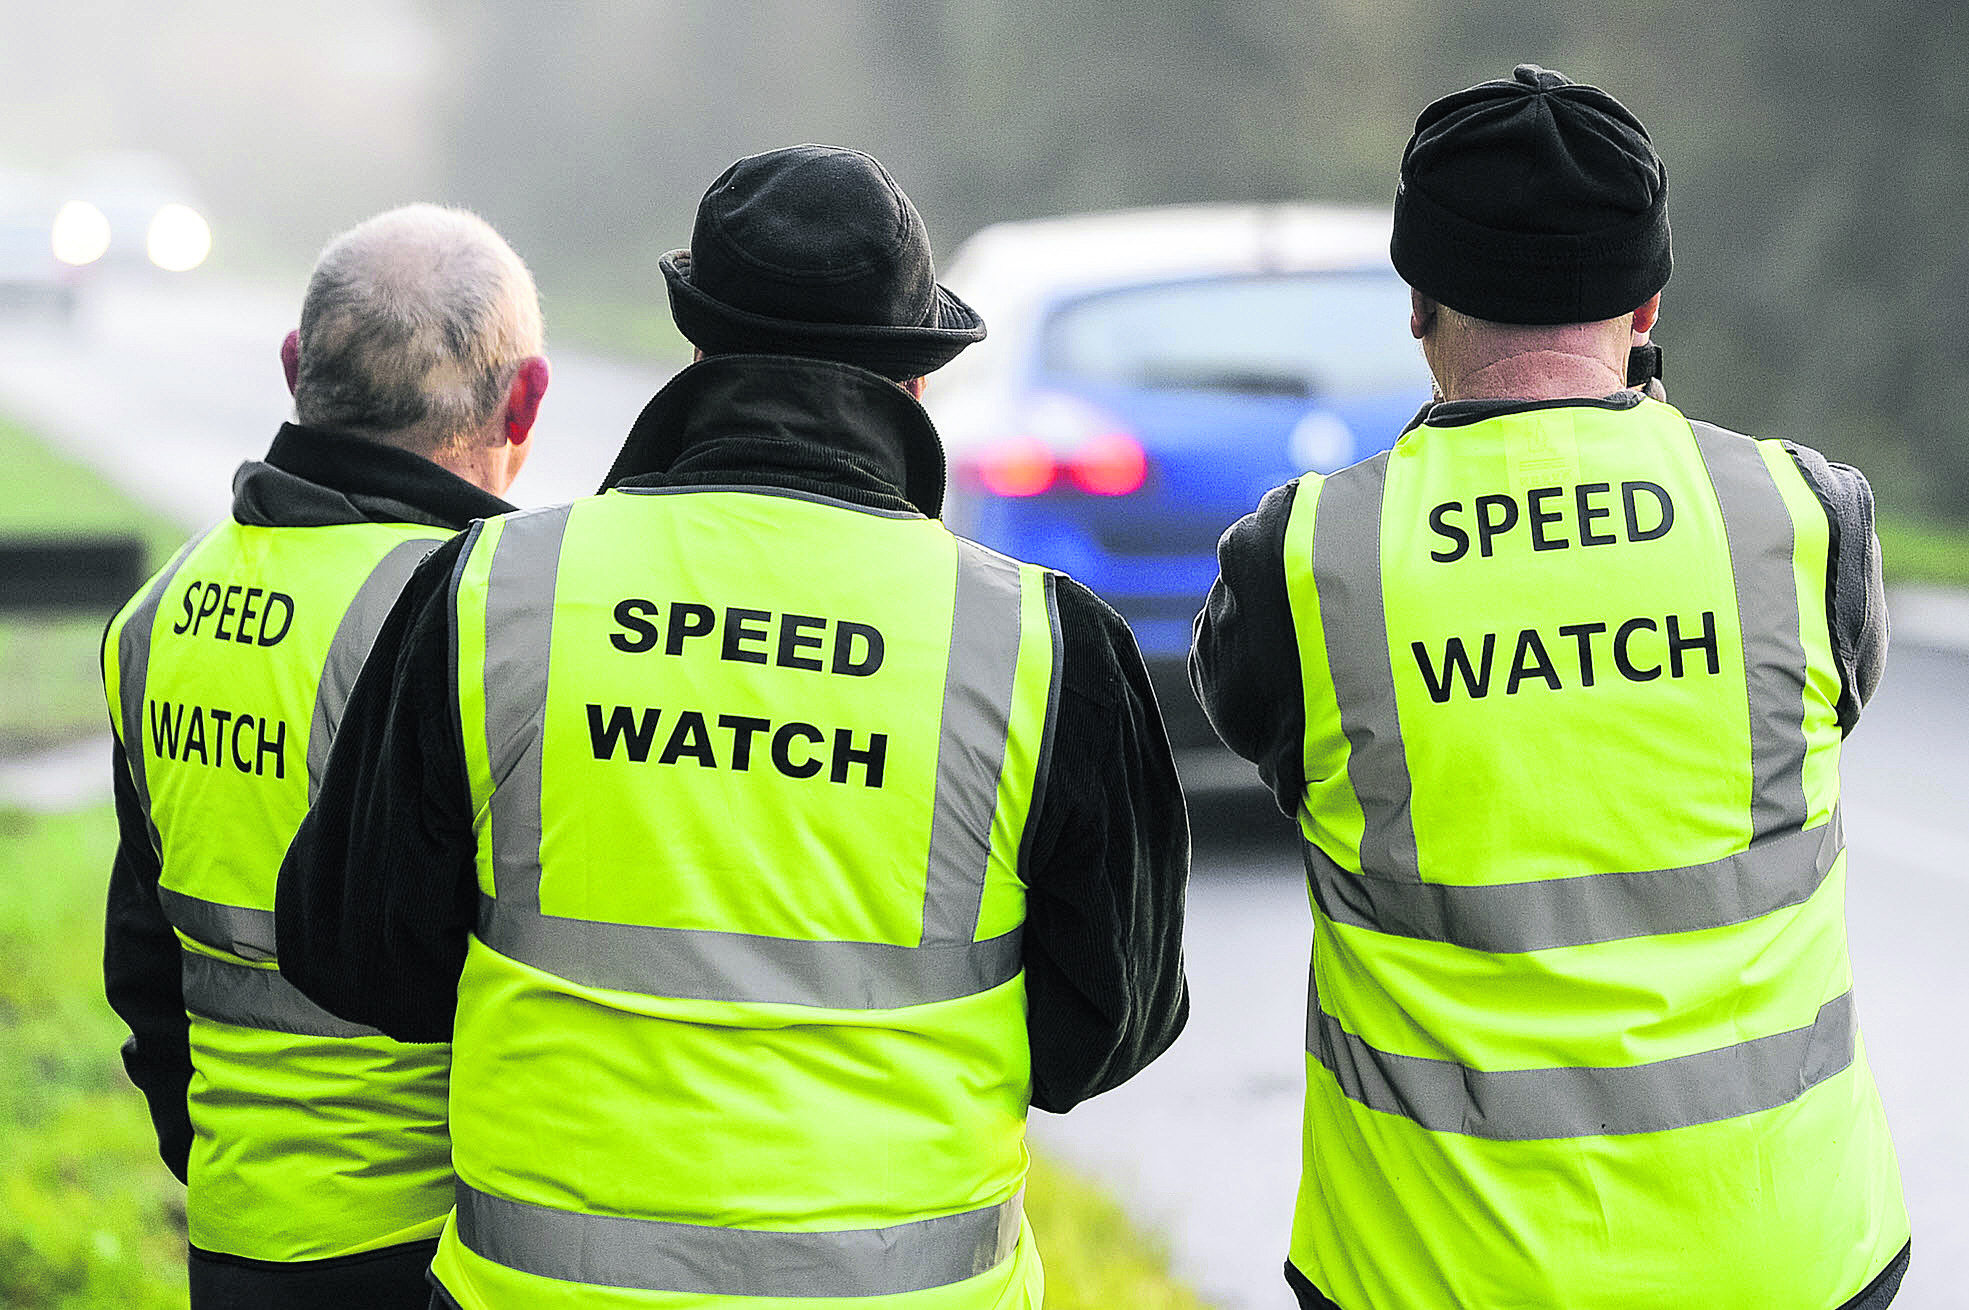 Volunteers catch 336 motorists speeding through Alderholt - many at double the limit